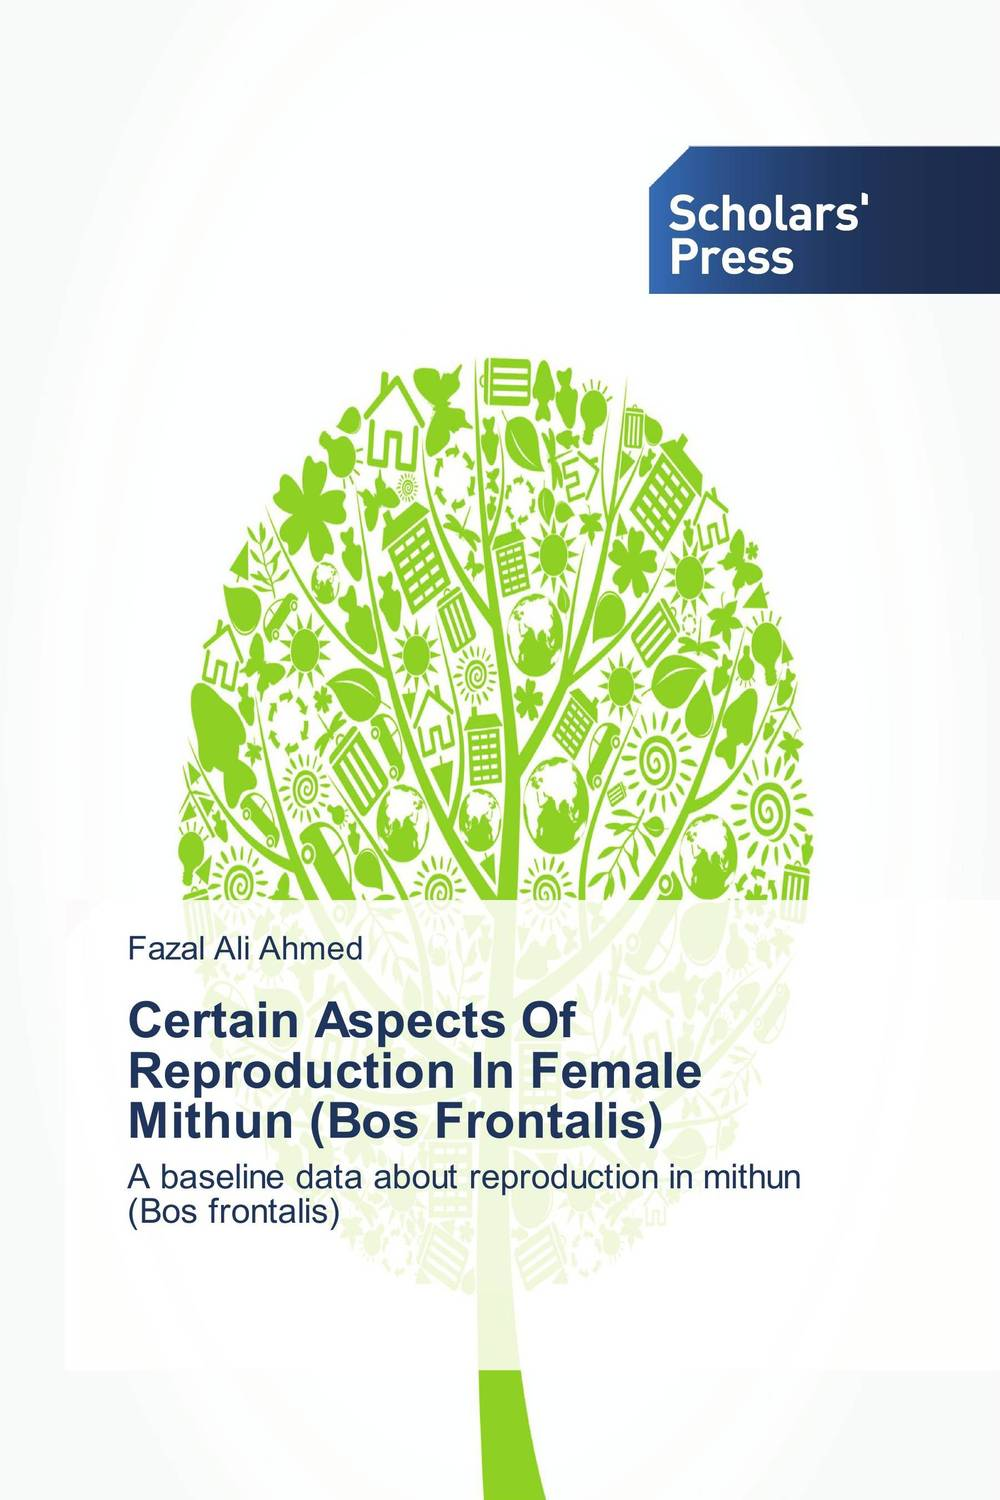 Certain Aspects Of Reproduction In Female Mithun (Bos Frontalis) psychiatric disorders in postpartum period